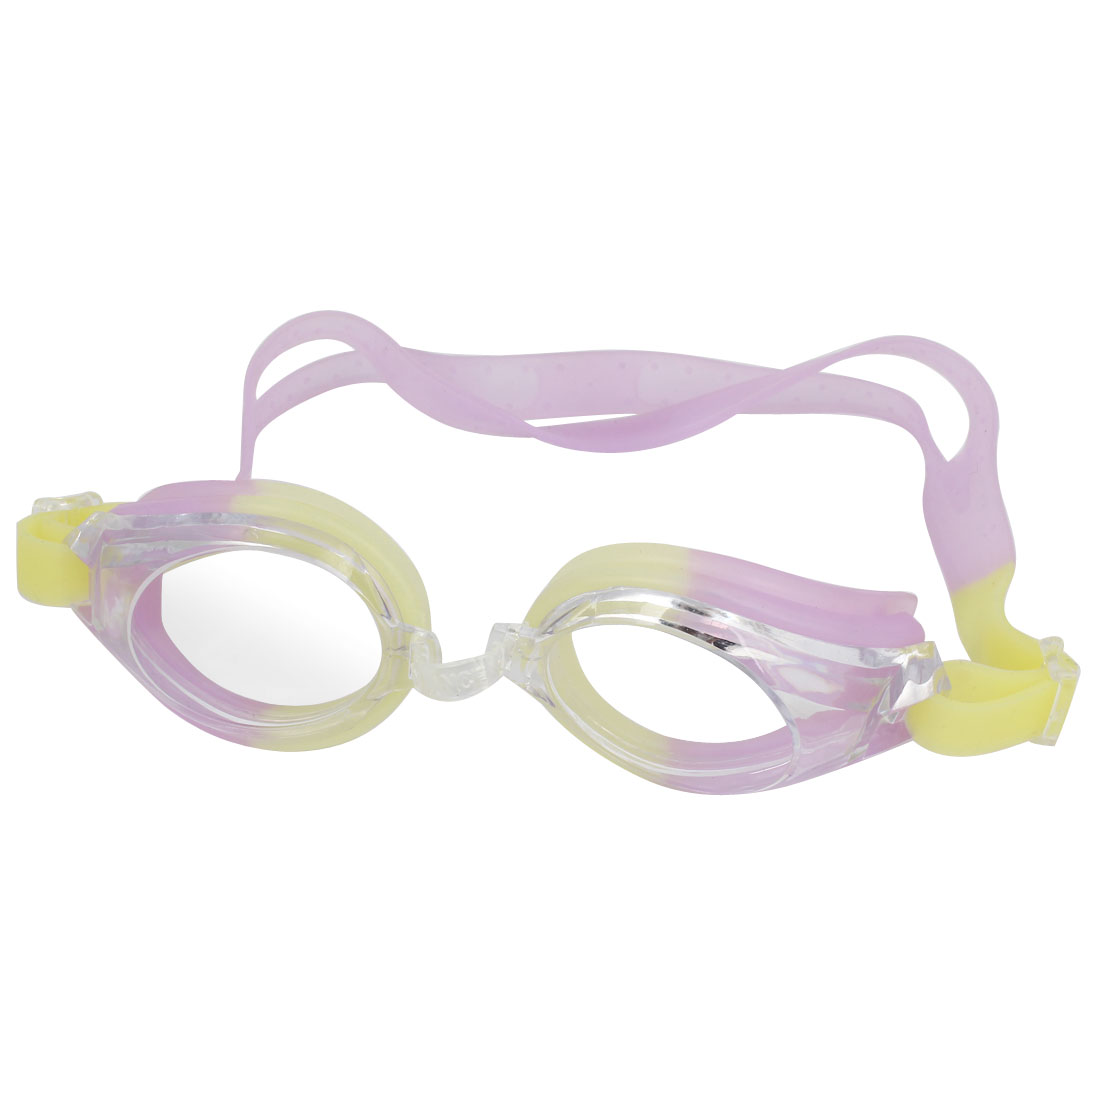 Light Purple Yellow Clear Silicone Adjustable Band Swimming Goggles w Earplugs